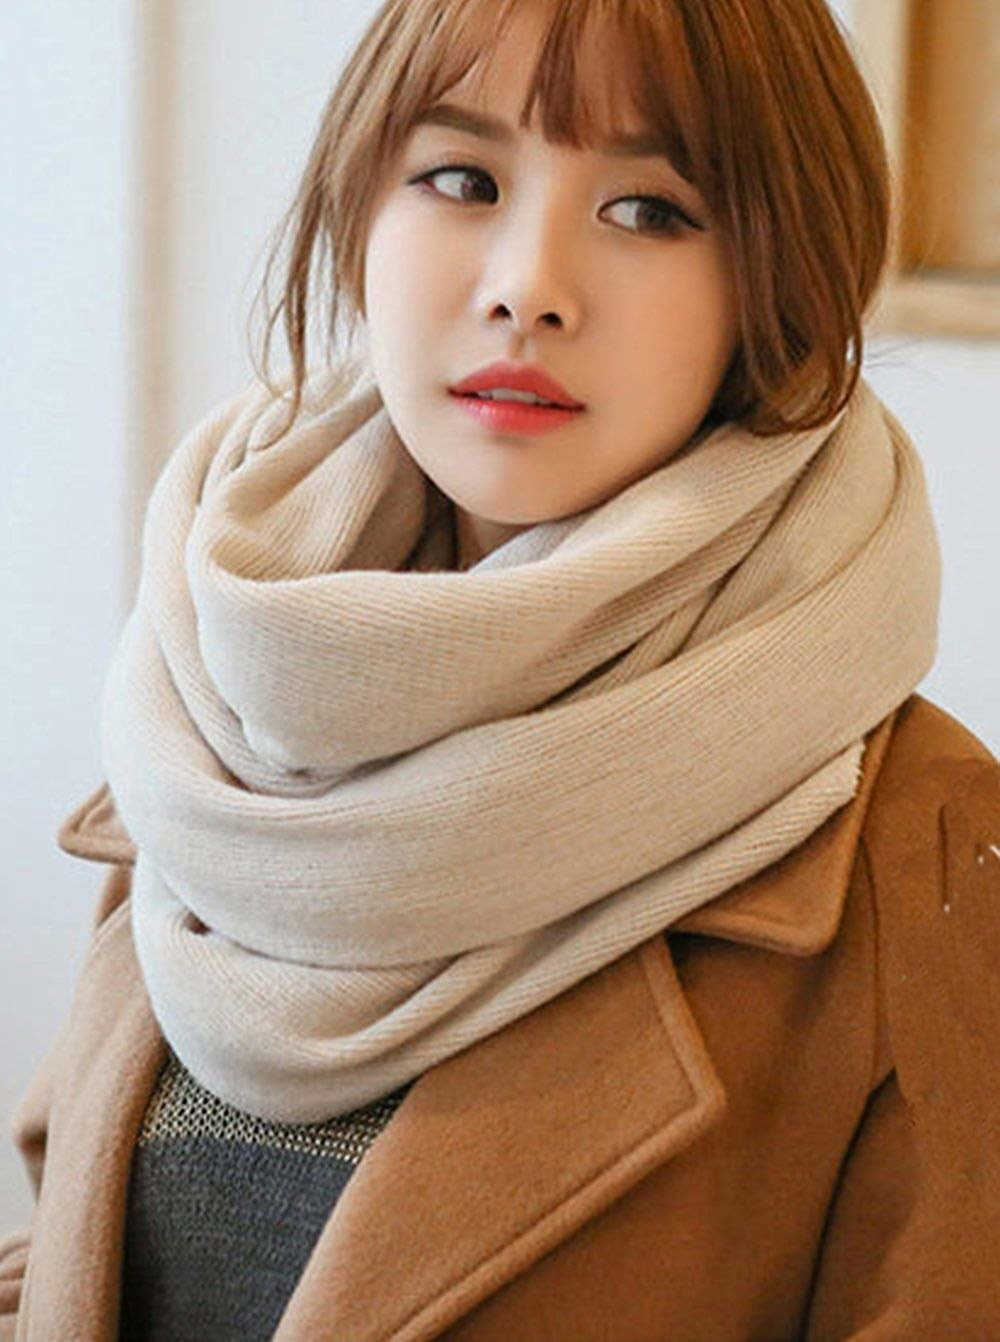 Model with a large beige scarf wrapped around their neck